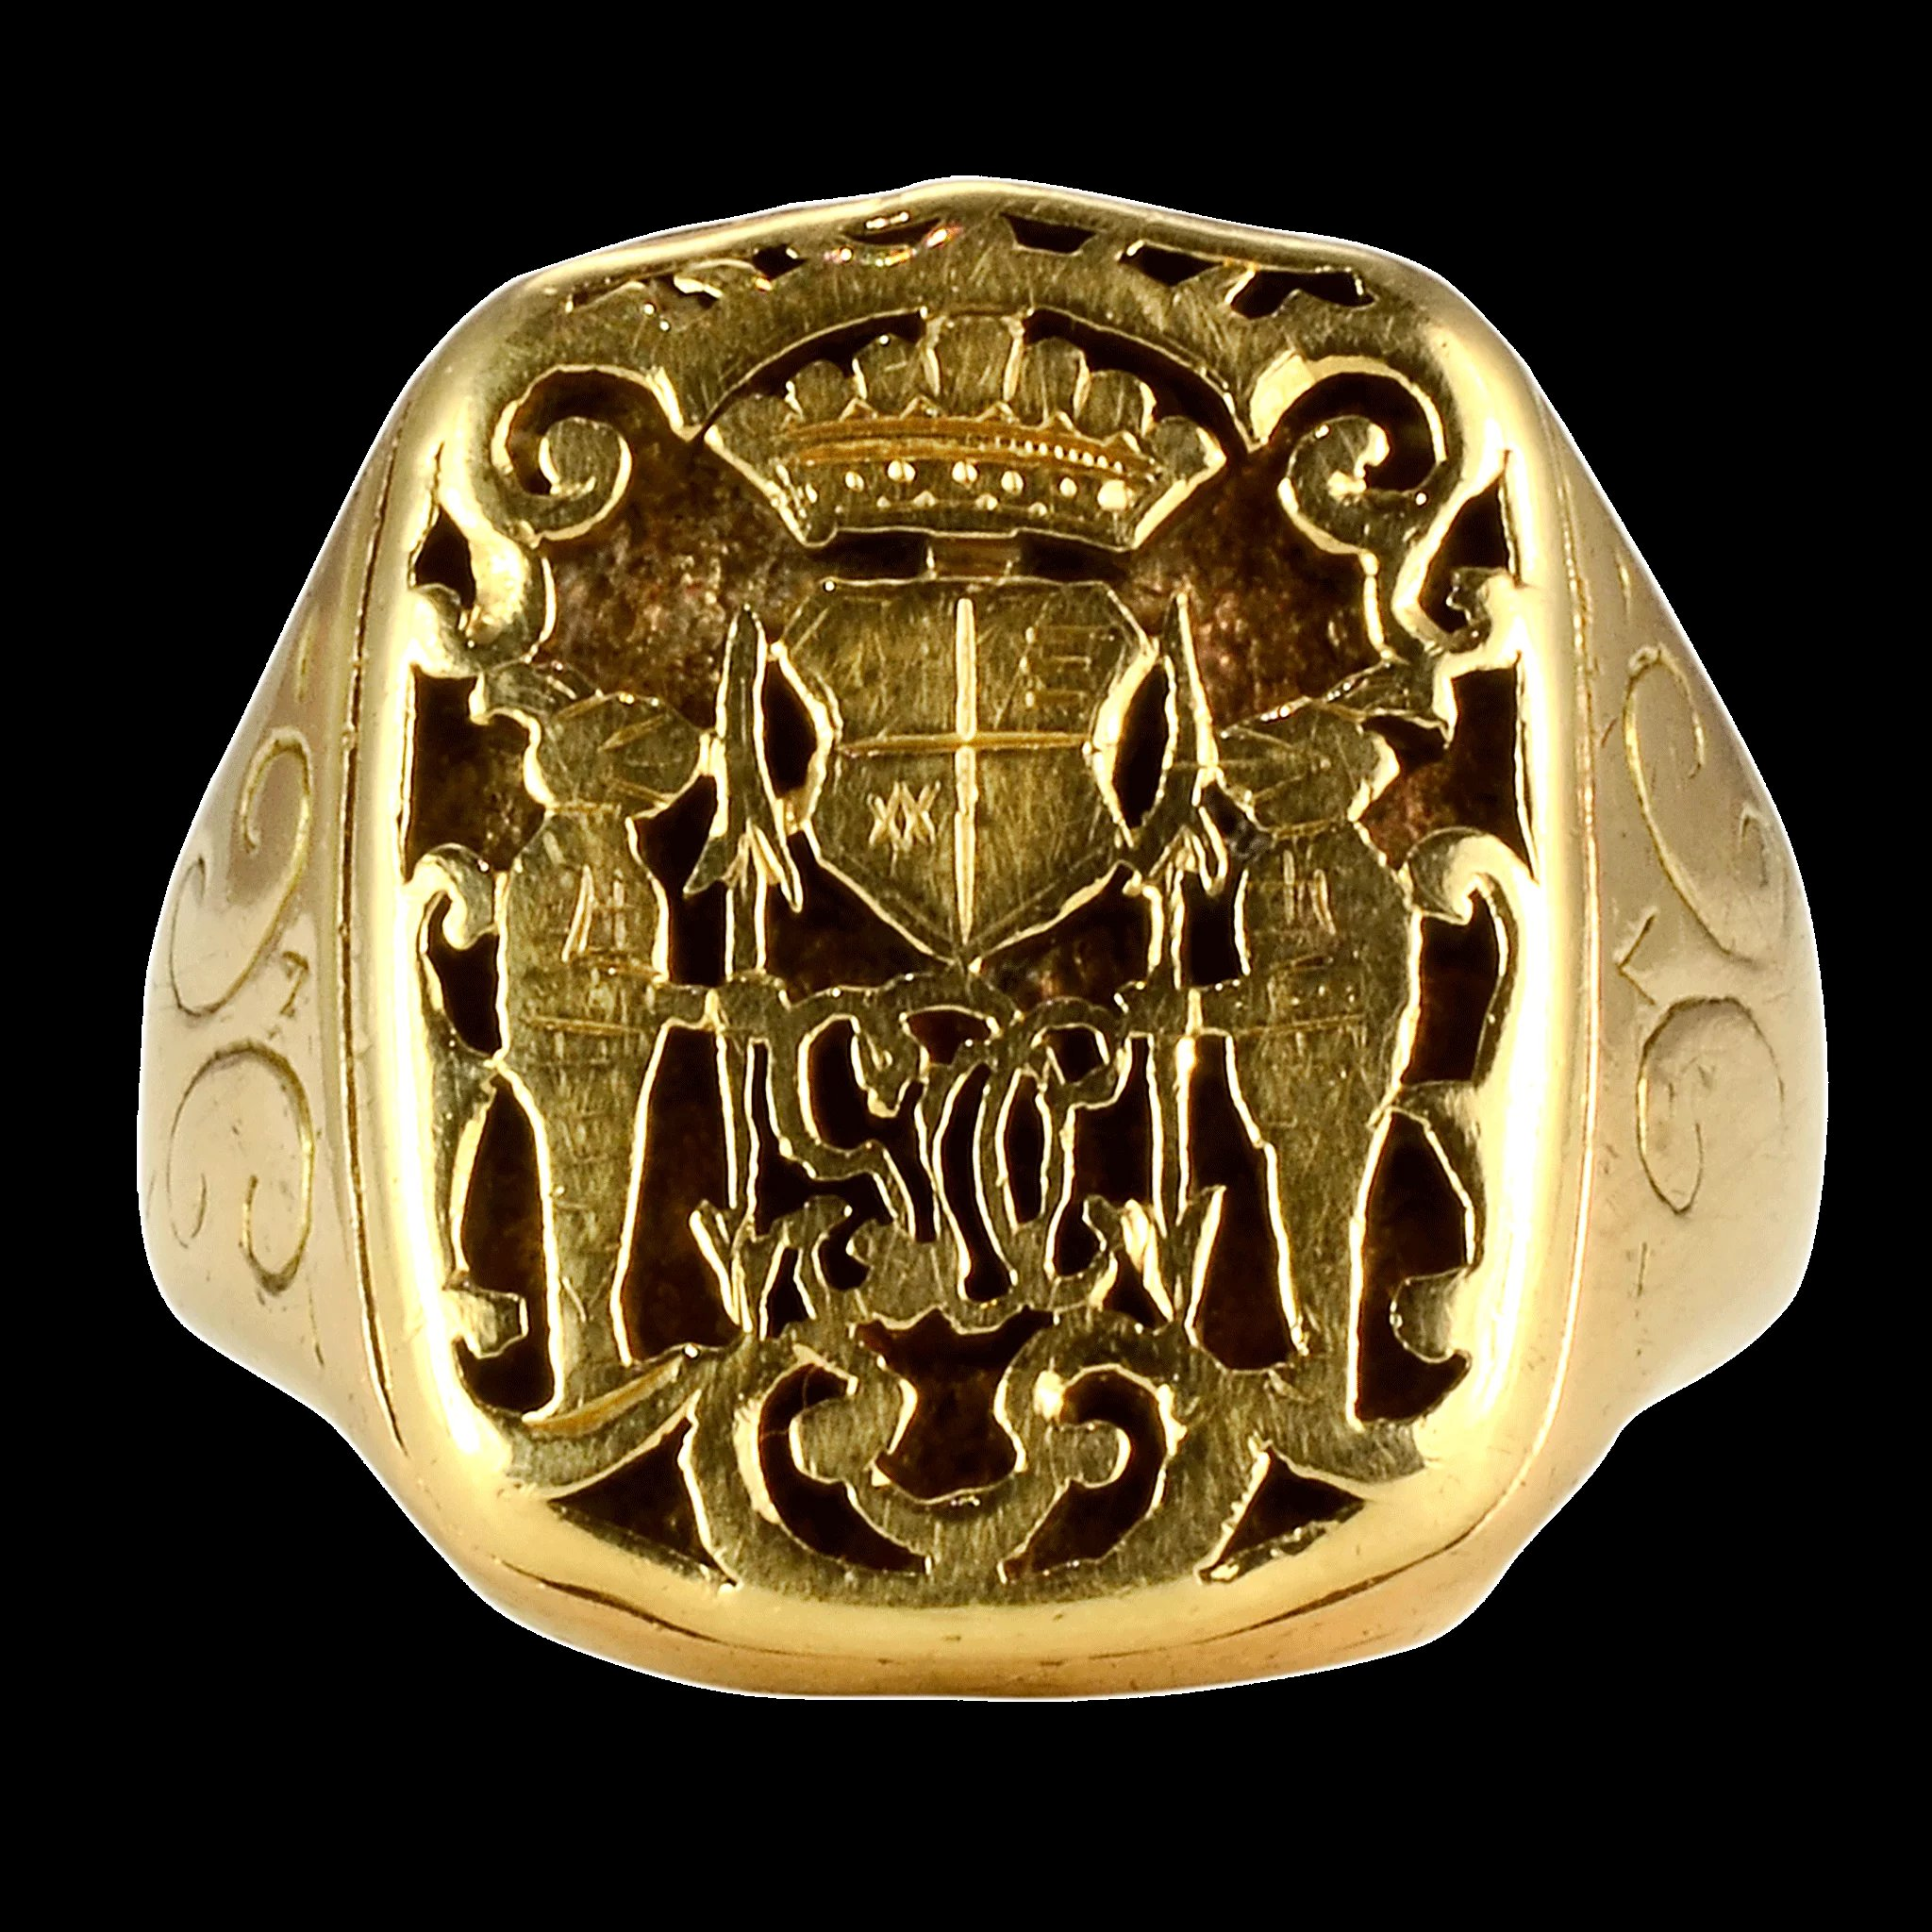 sterling symbol big rings en de from golden lis ring img evilrings crest silver pure with fleur